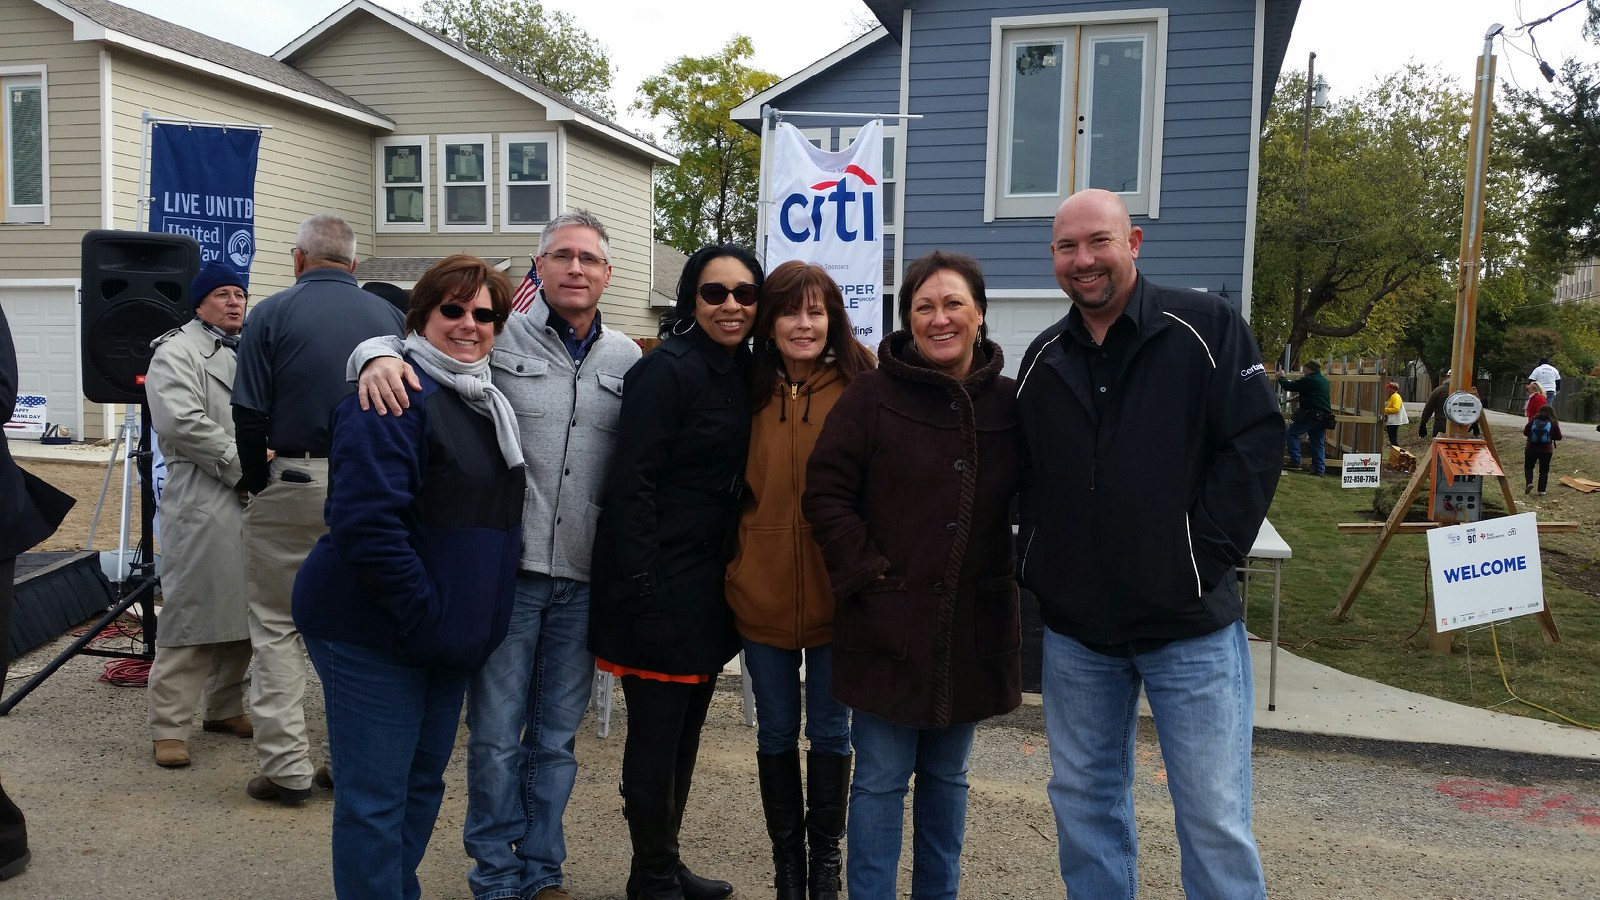 Garland Insulating Supported Their Community